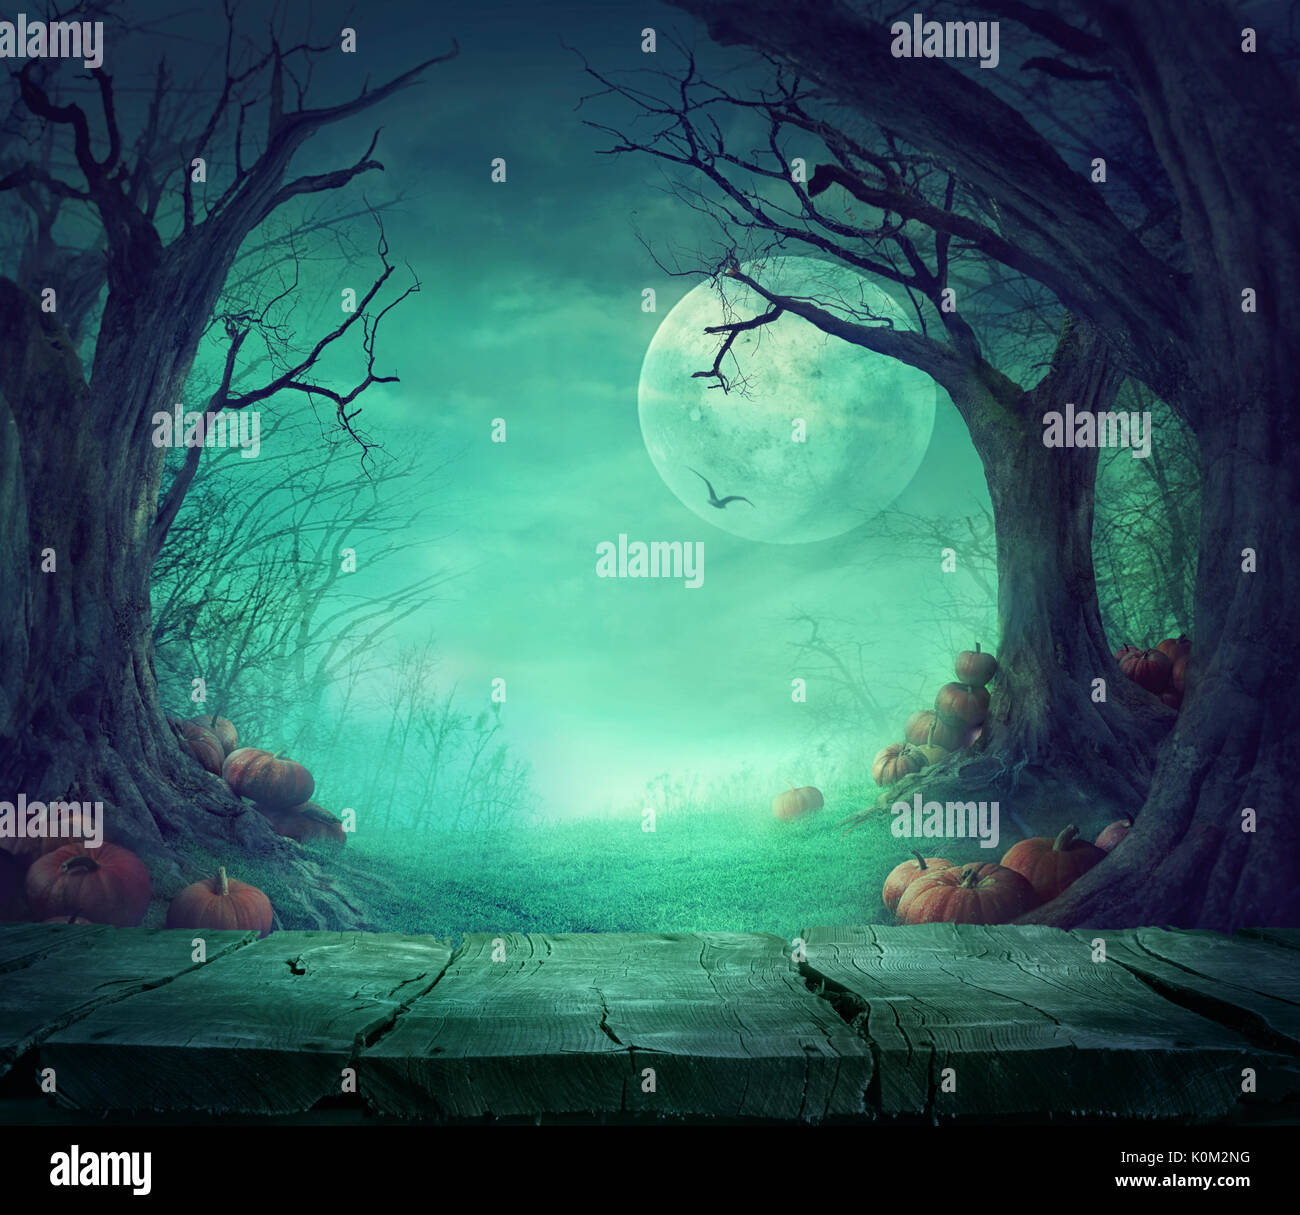 Fall Wallpaper Hd Free Halloween Background Spooky Forest With Dead Trees And